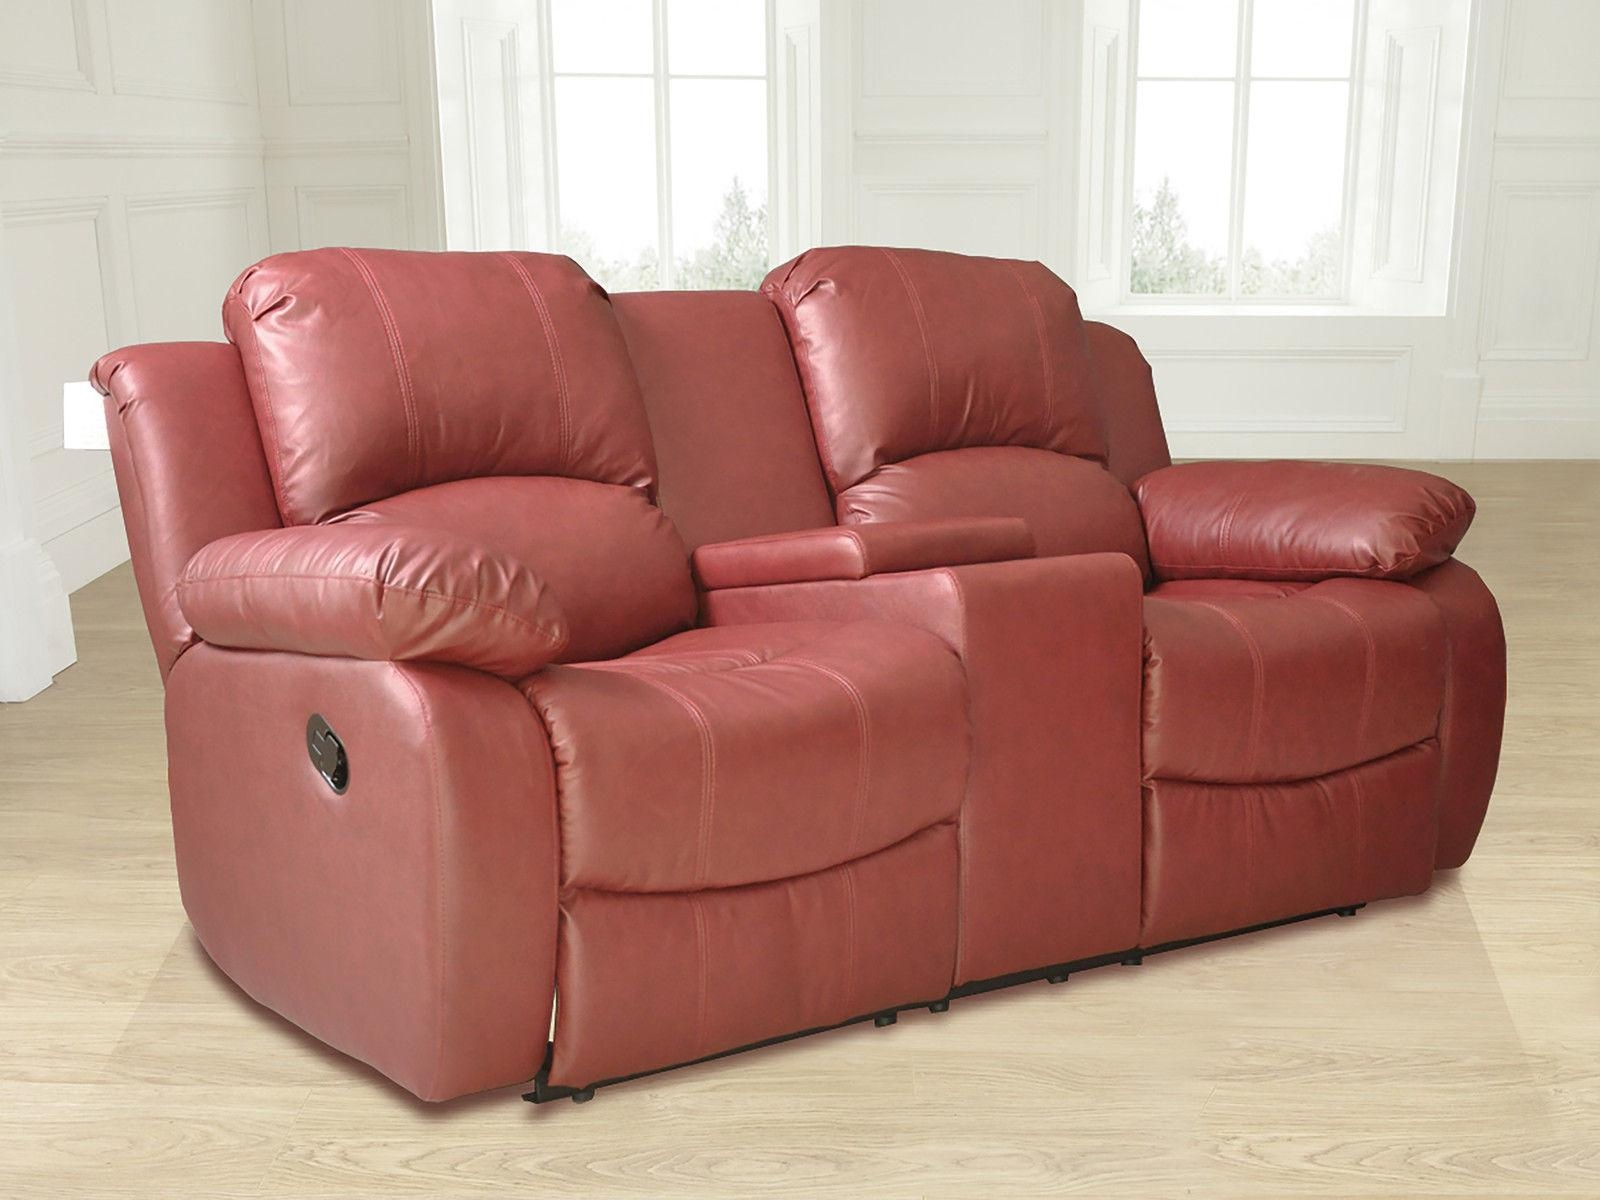 sofas for sell leather and fabric in the same room 2019 latest unusual sofa ideas